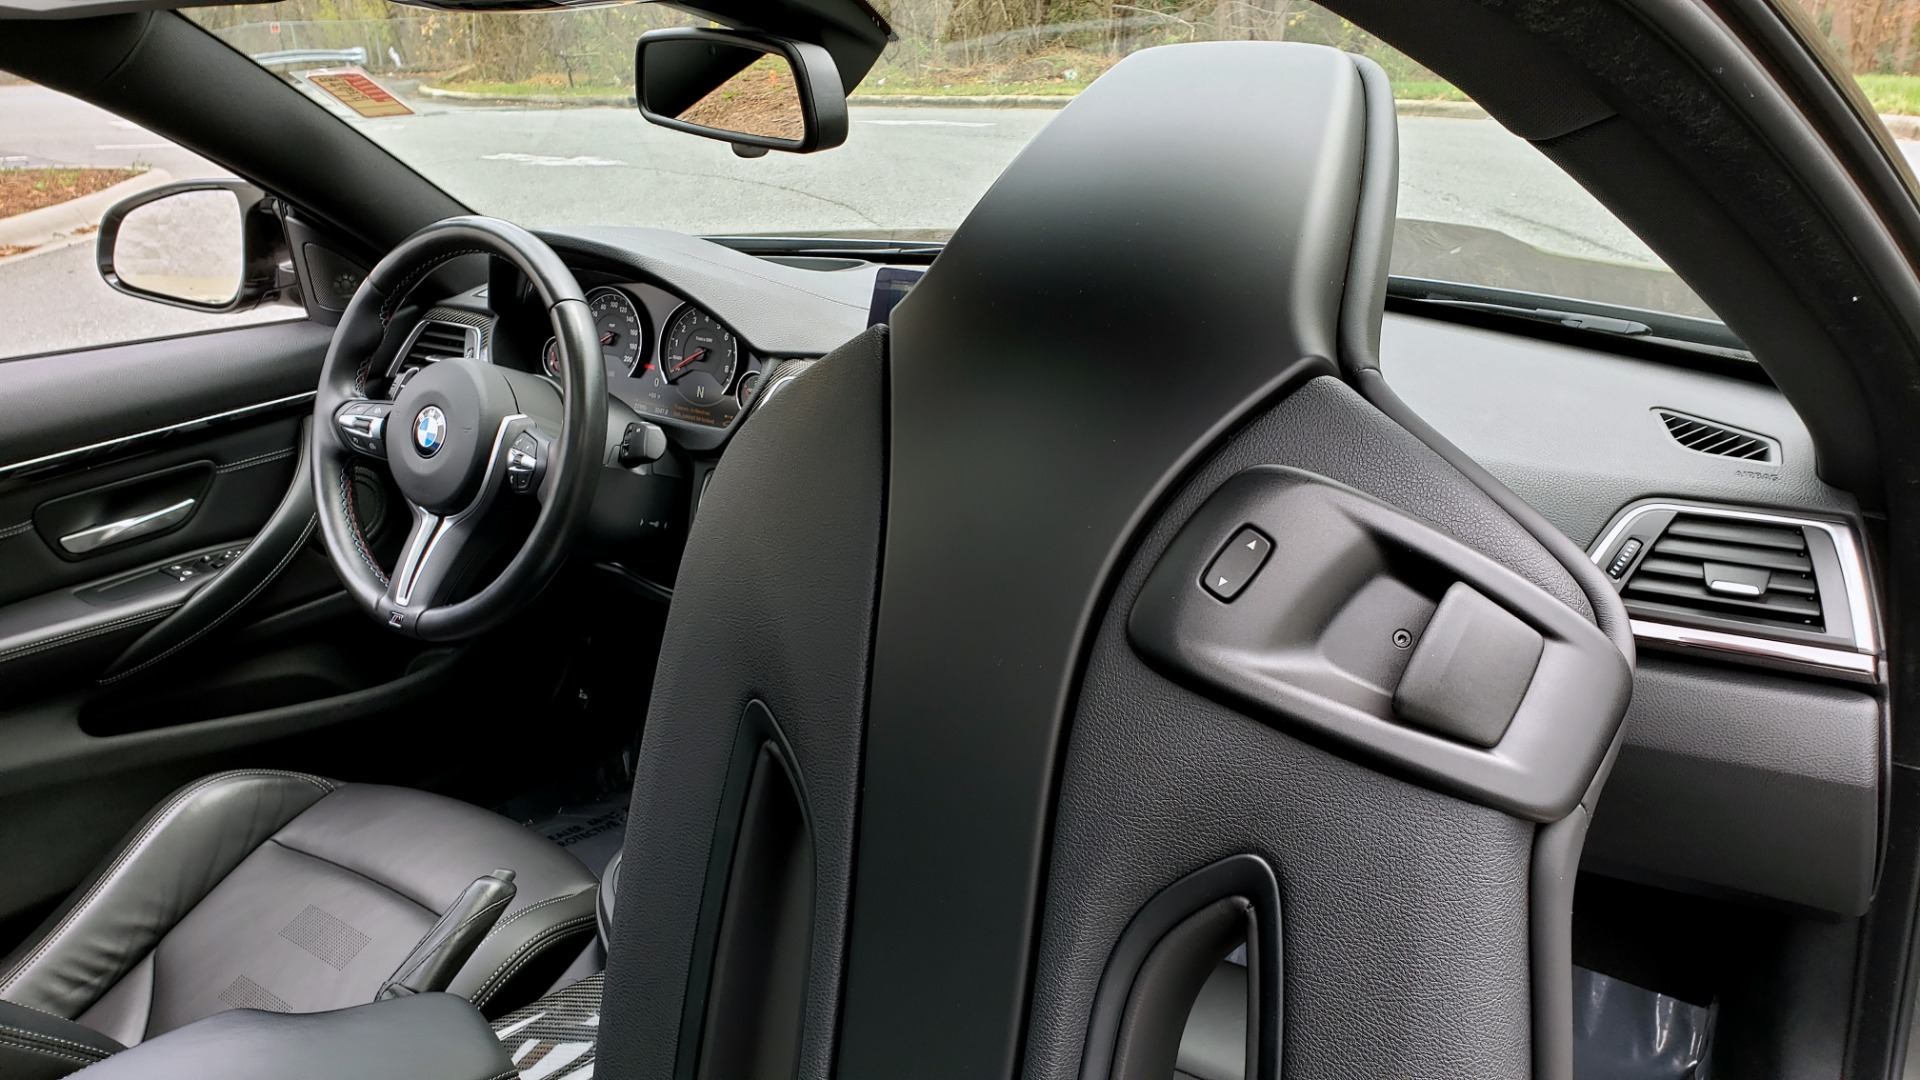 Used 2018 BMW M4 M-COMP / EXEC PKG / 7-SPD DBL CLUTCH / NAV / REARVIEW for sale Sold at Formula Imports in Charlotte NC 28227 64